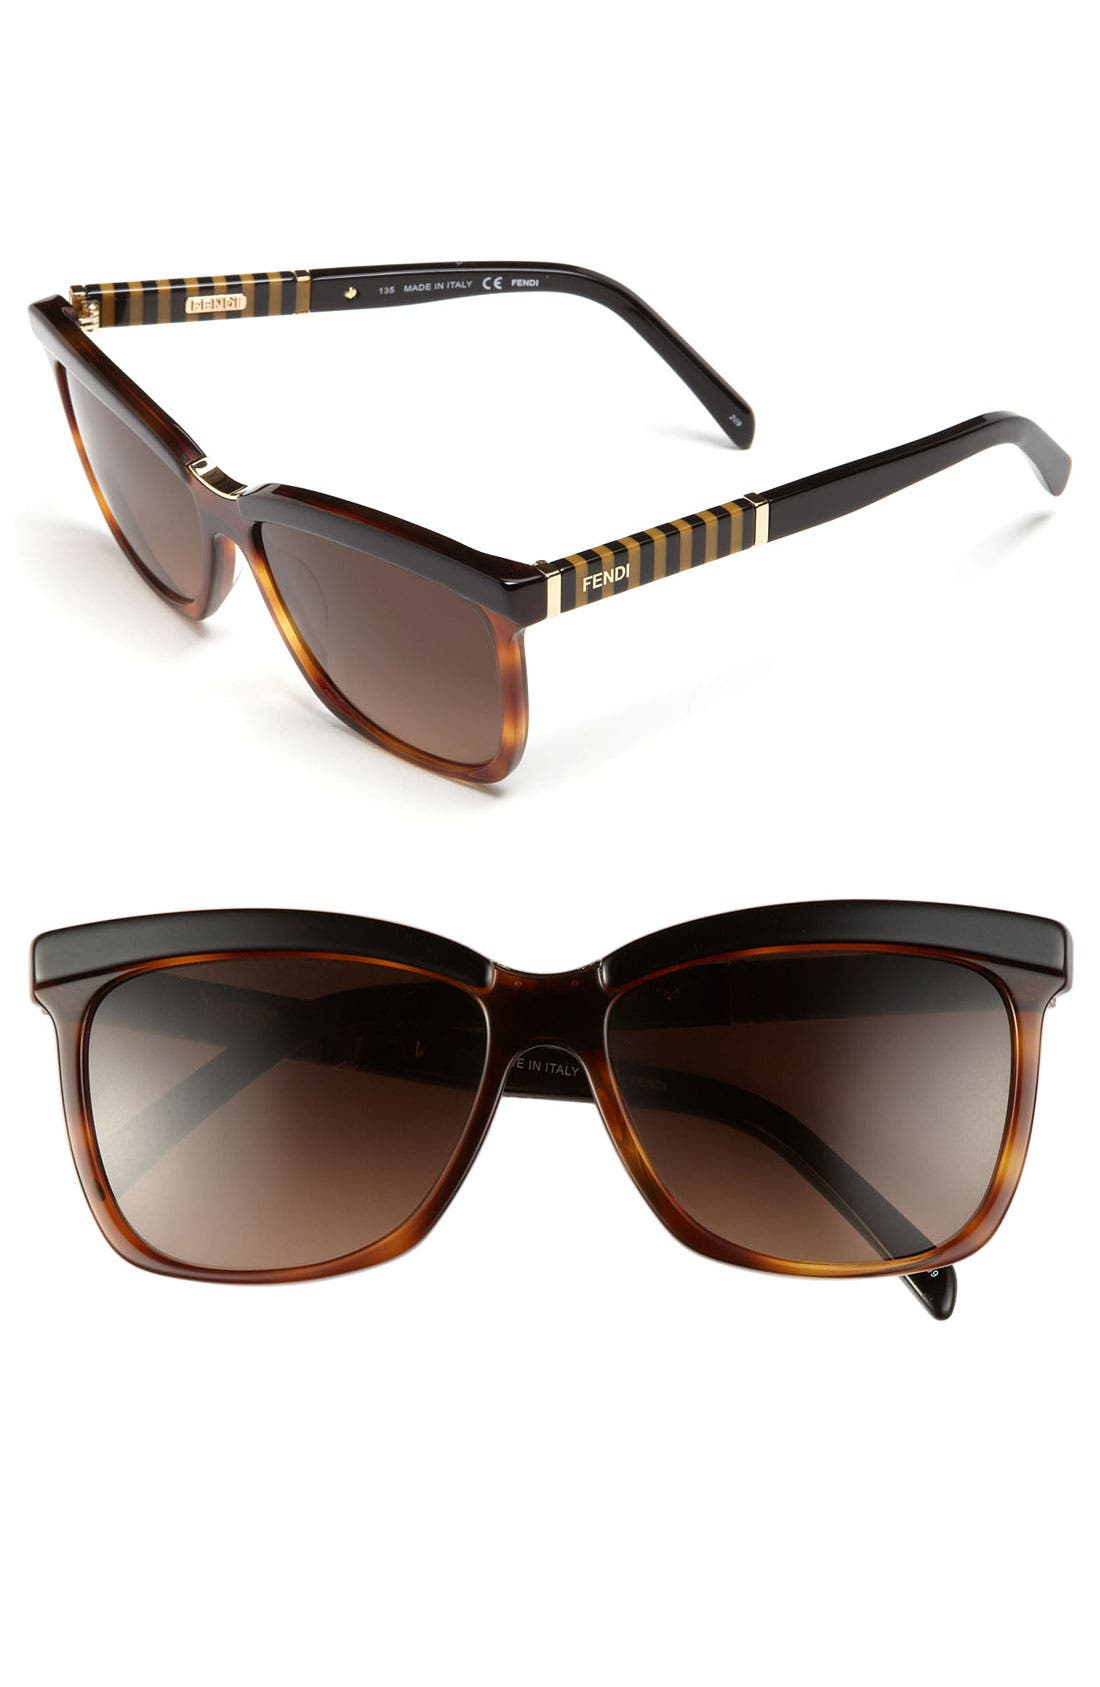 Main Image - Fendi 55mm Oversized Sunglasses